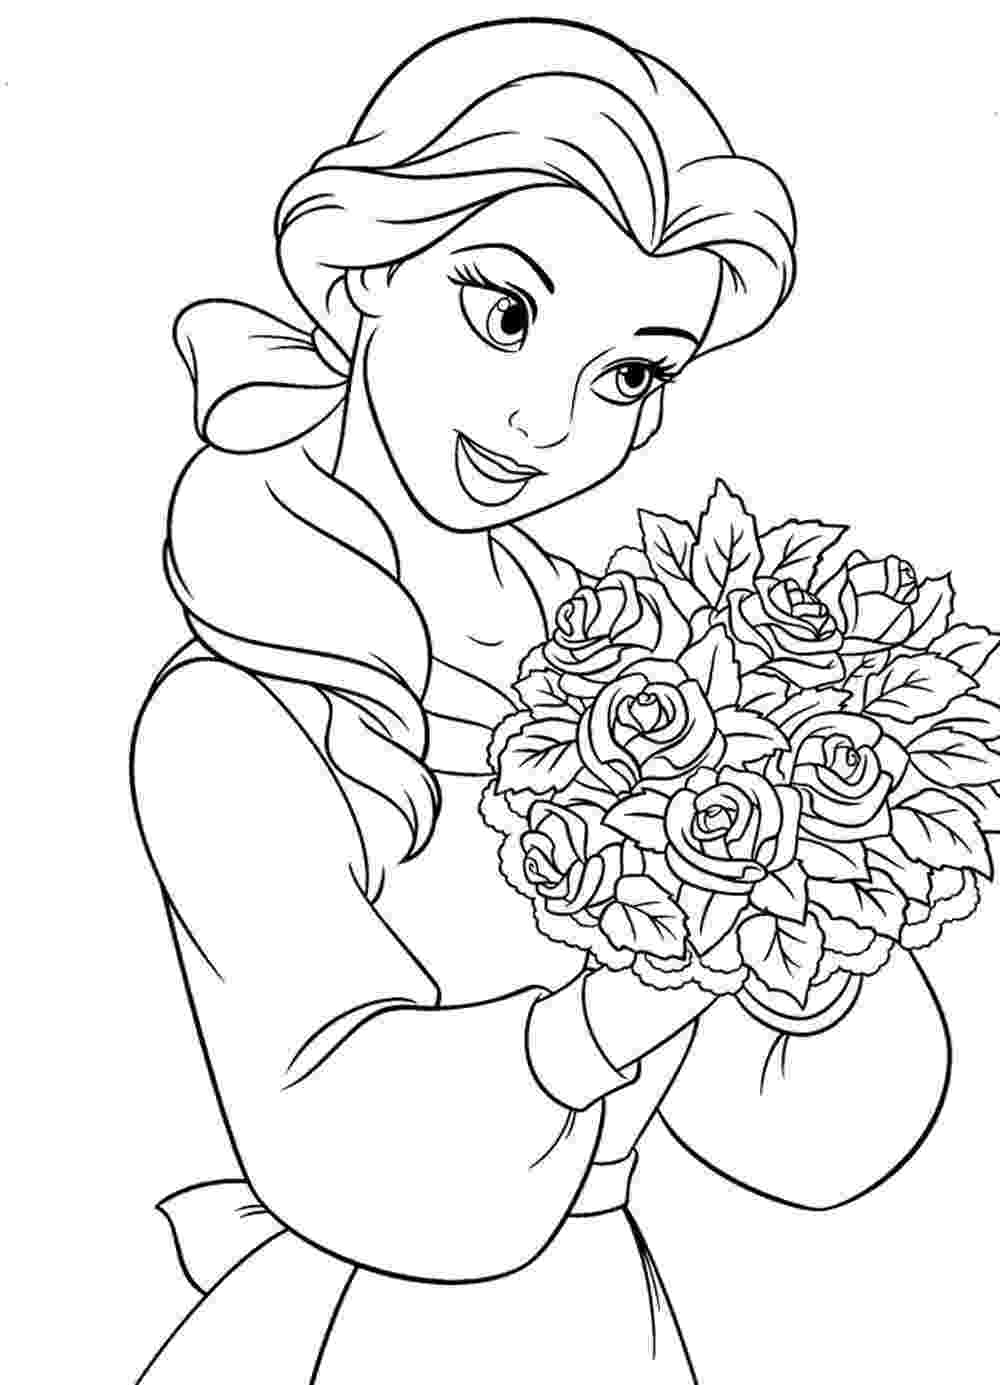 printing pages for girls beautiful princess aurora for girls coloring page h m printing for girls pages